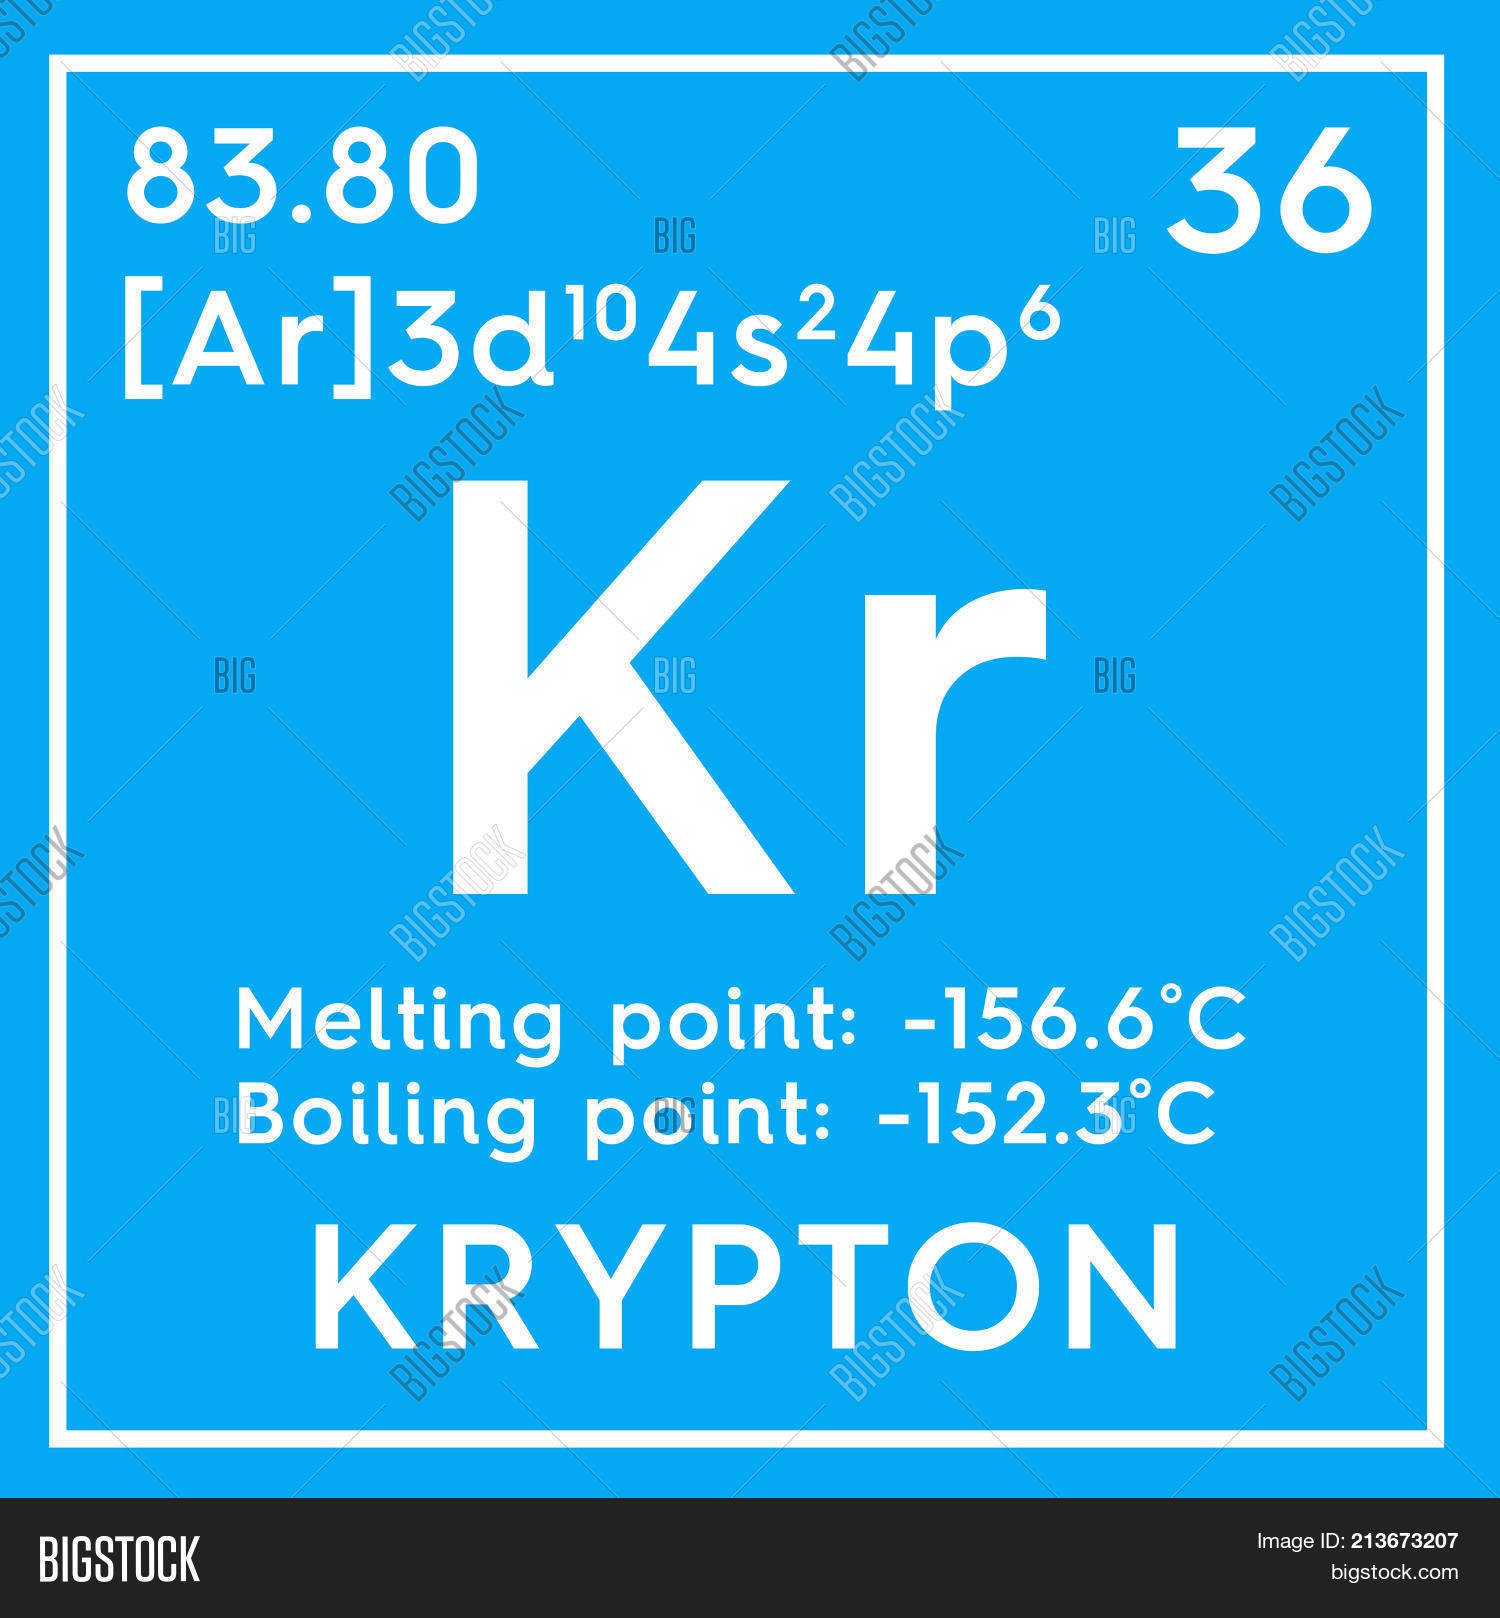 Krypton noble gases chemical image photo bigstock chemical element of mendeleevs periodic table 3d illustration gamestrikefo Images